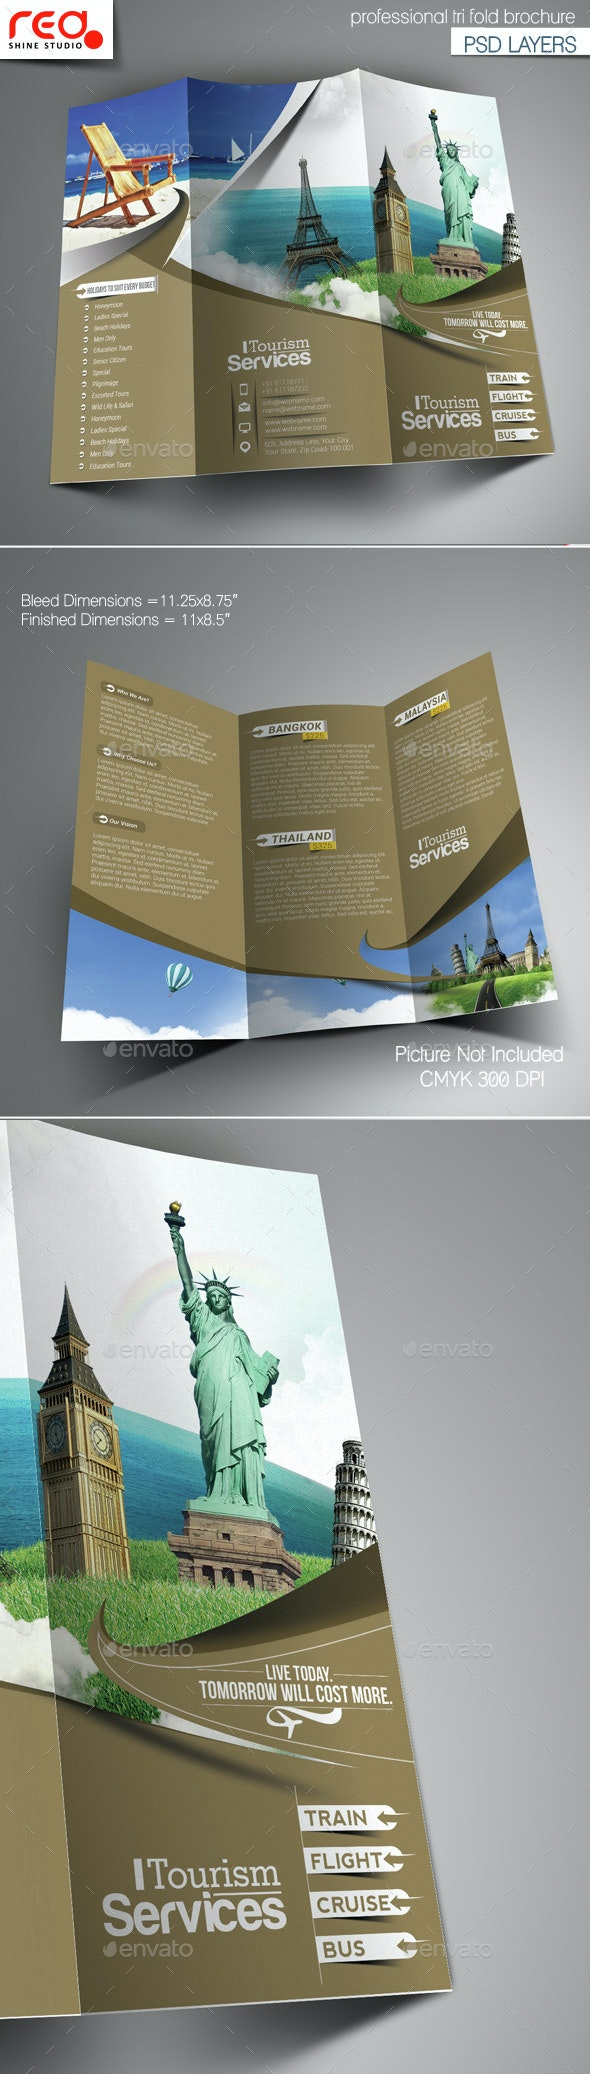 Tourism Service Trifold Brochure Template  - Corporate Brochures